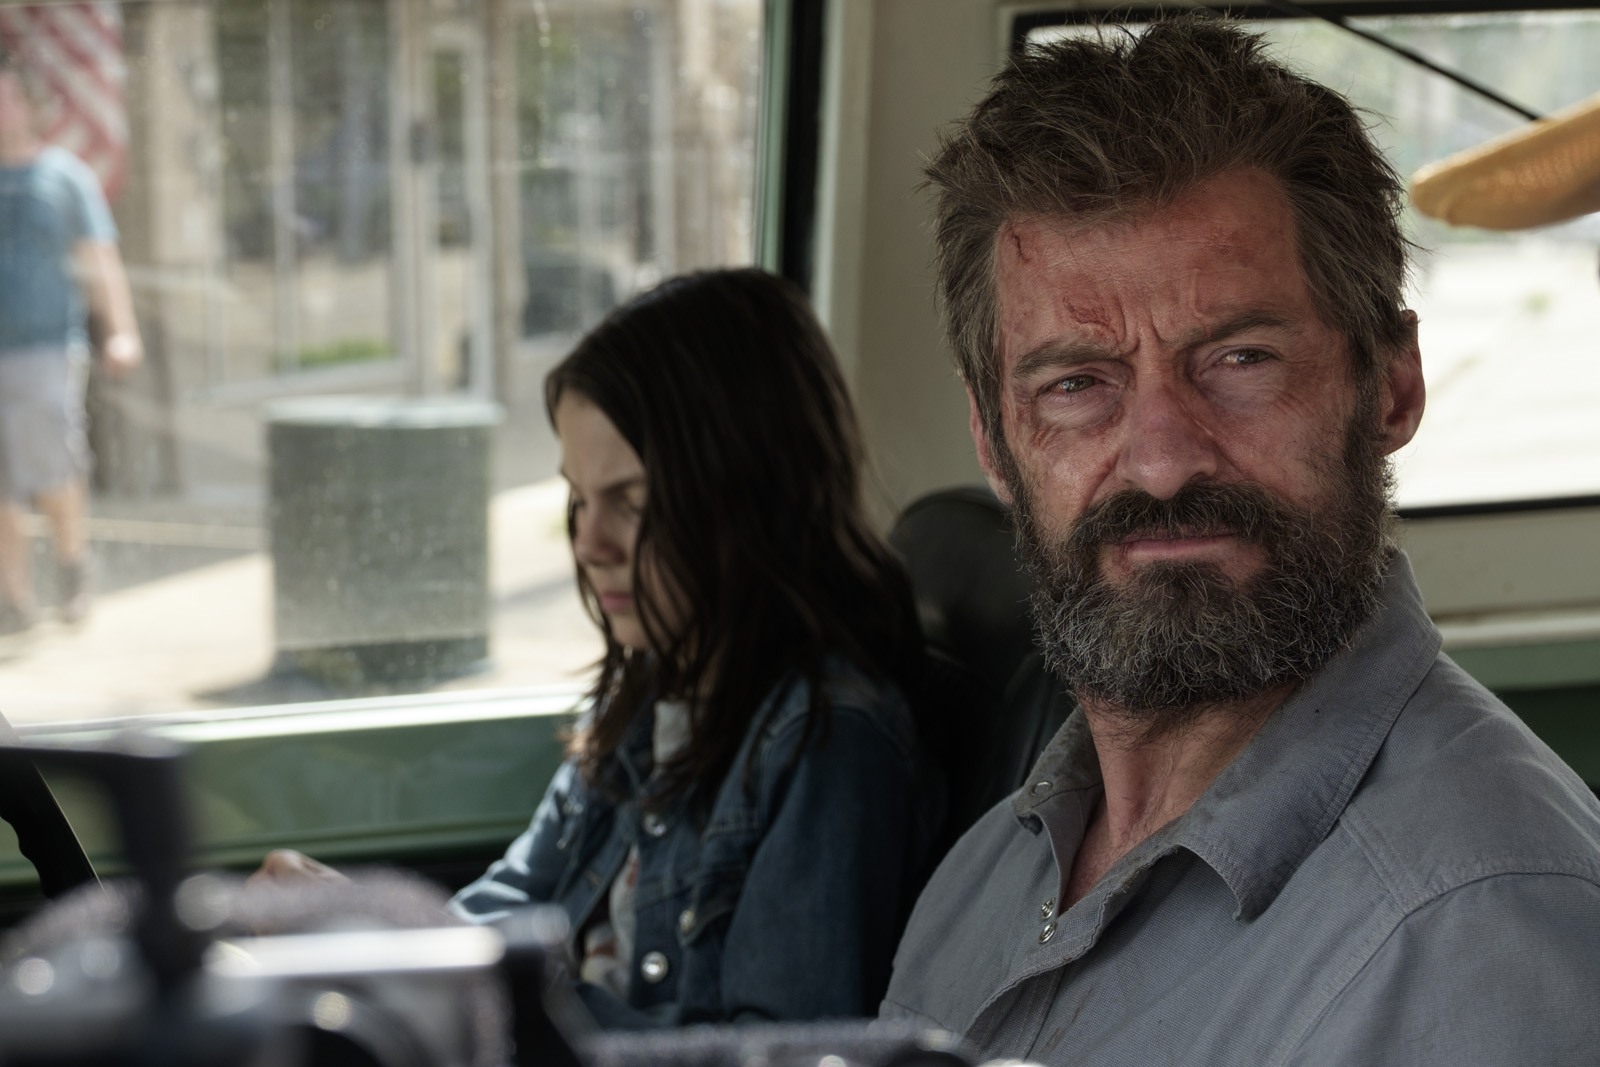 'LOGAN.' Hugh Jackman plays Wolverine one last time in the upcoming 'X-Men' installment. Photo courtesy of Warner Bros